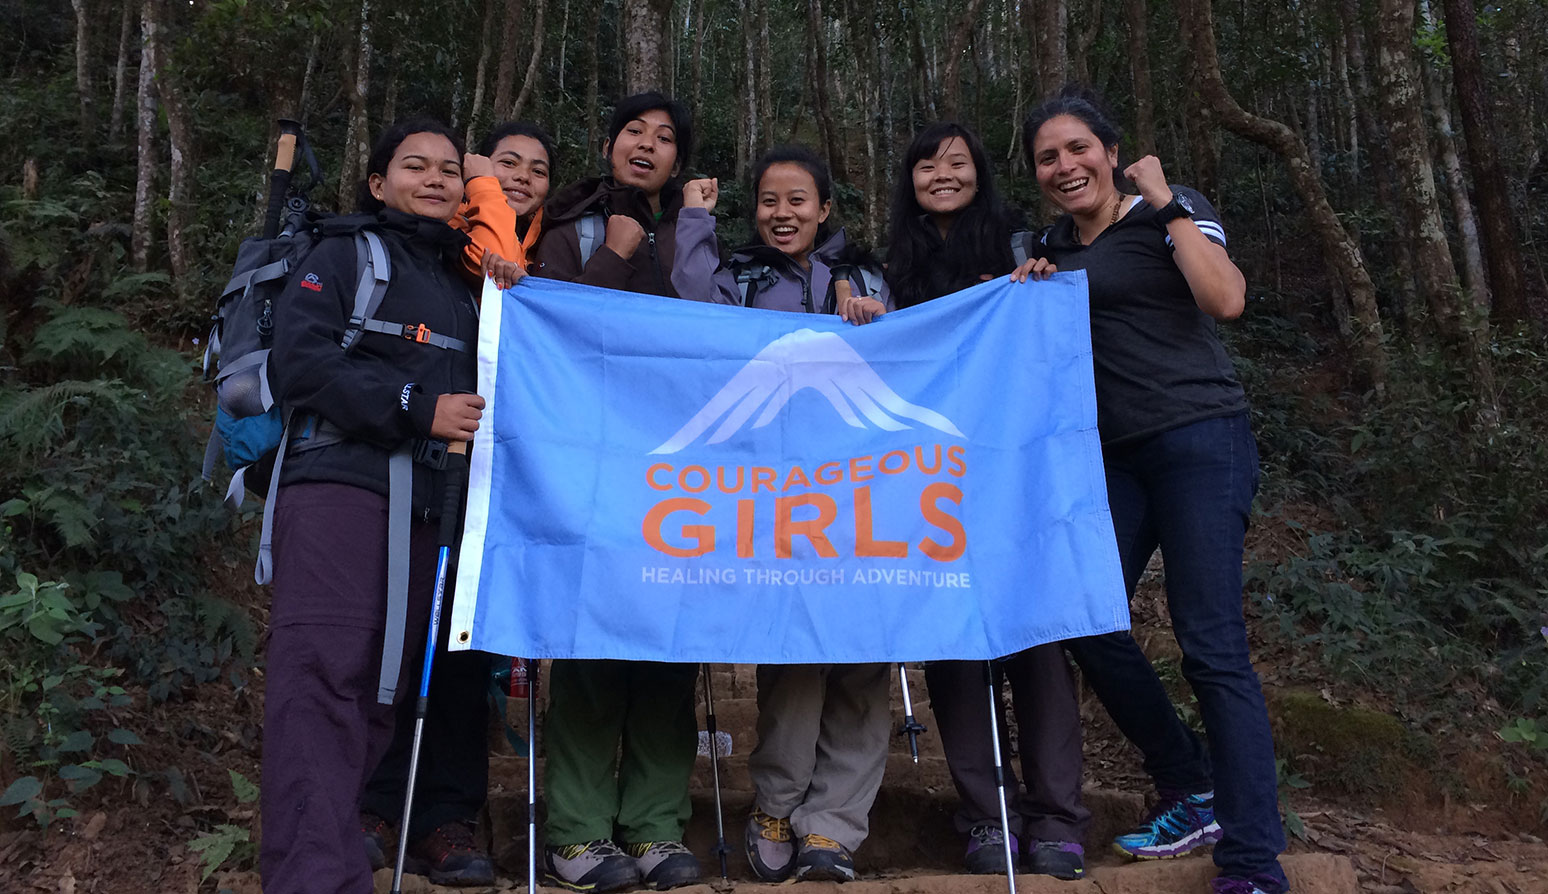 Silvia Vasquez-Lavado, far right, stands with a group of Nepalese women after their first hike together.